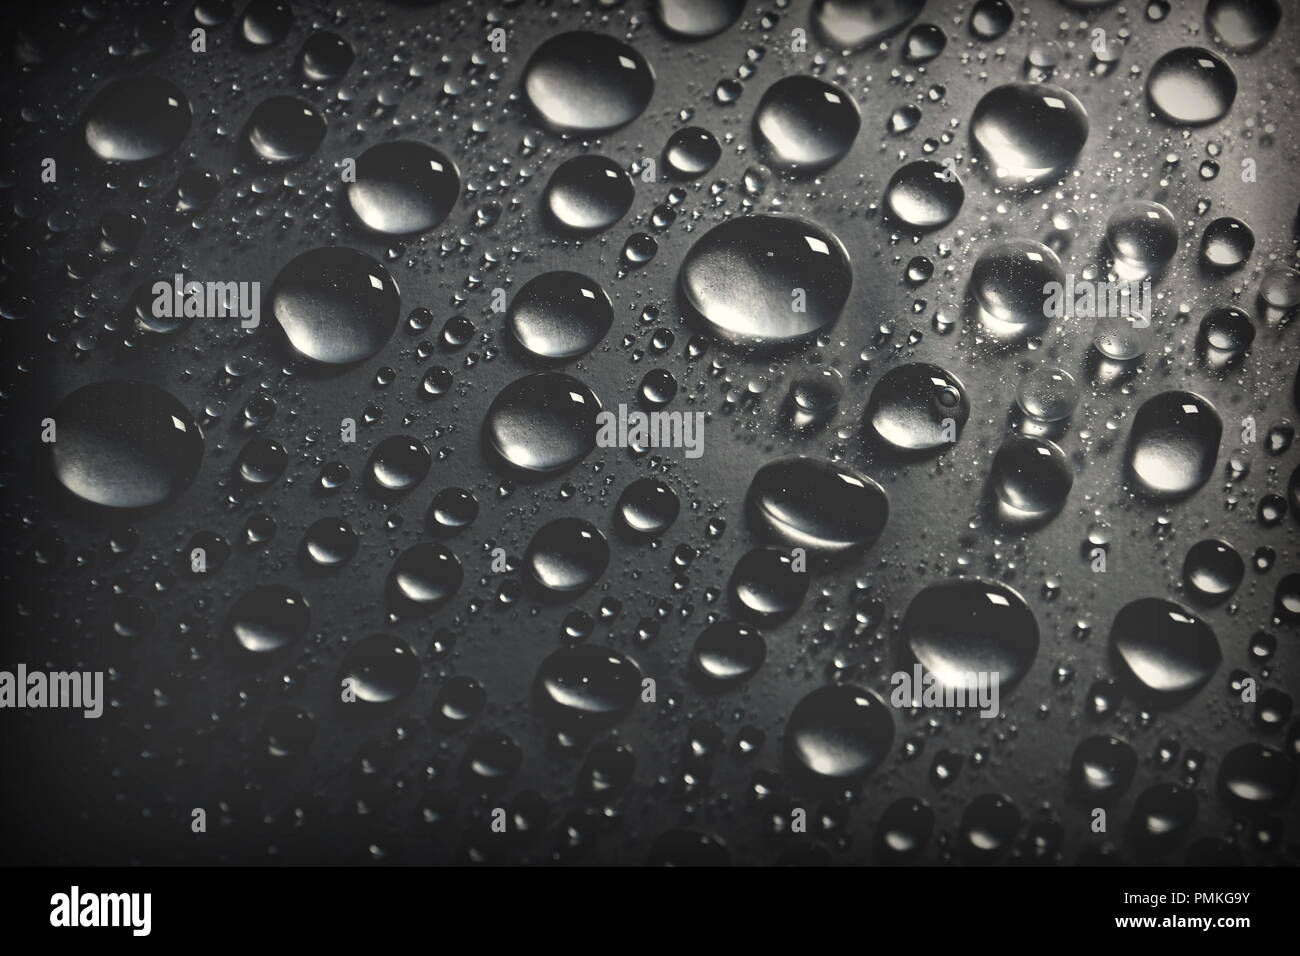 Shiny water drops on black background for designer cover web header page templates